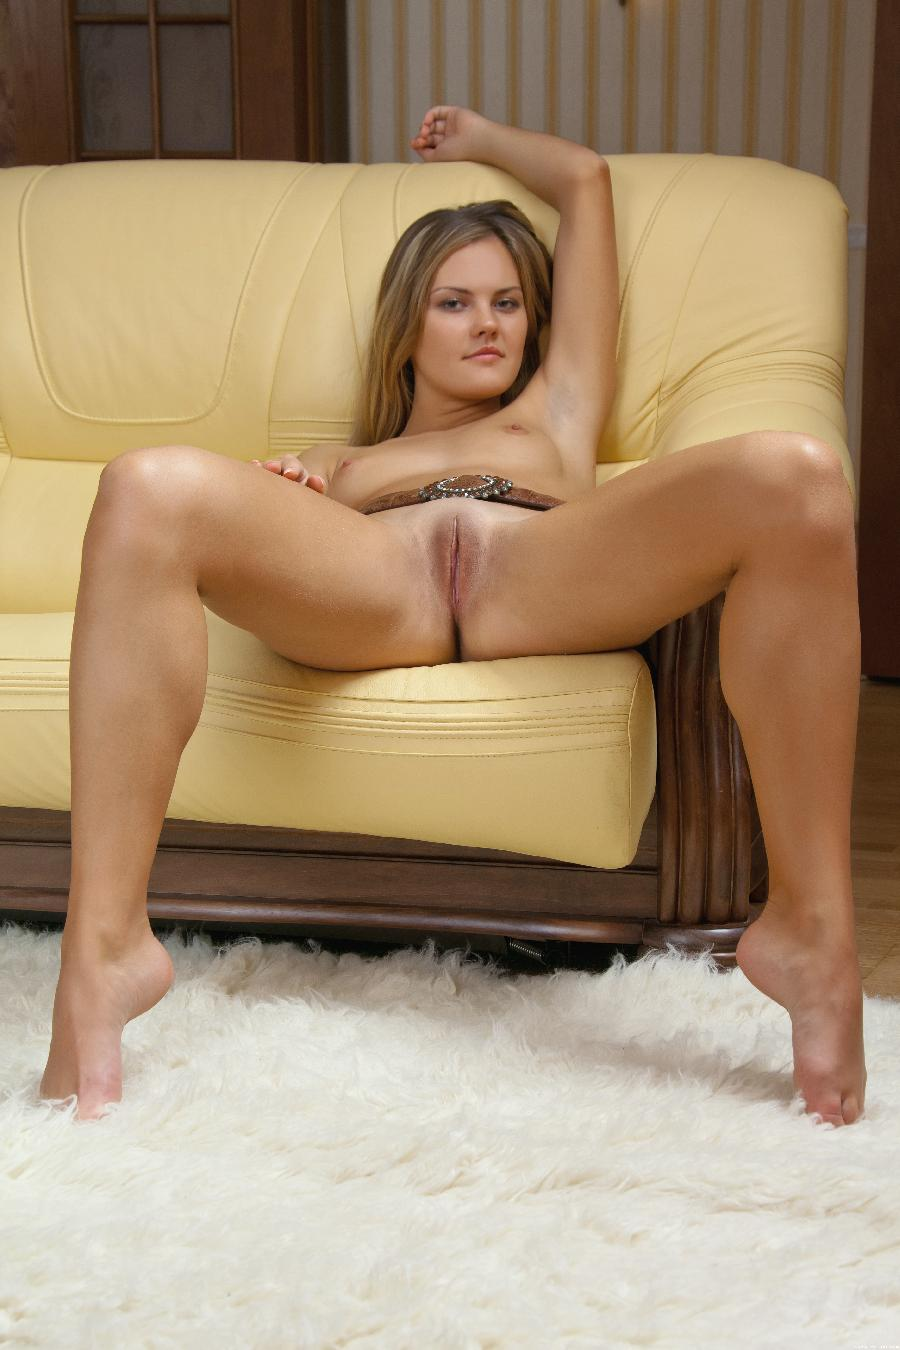 Young Carla sticking out her ass on sofa - 24